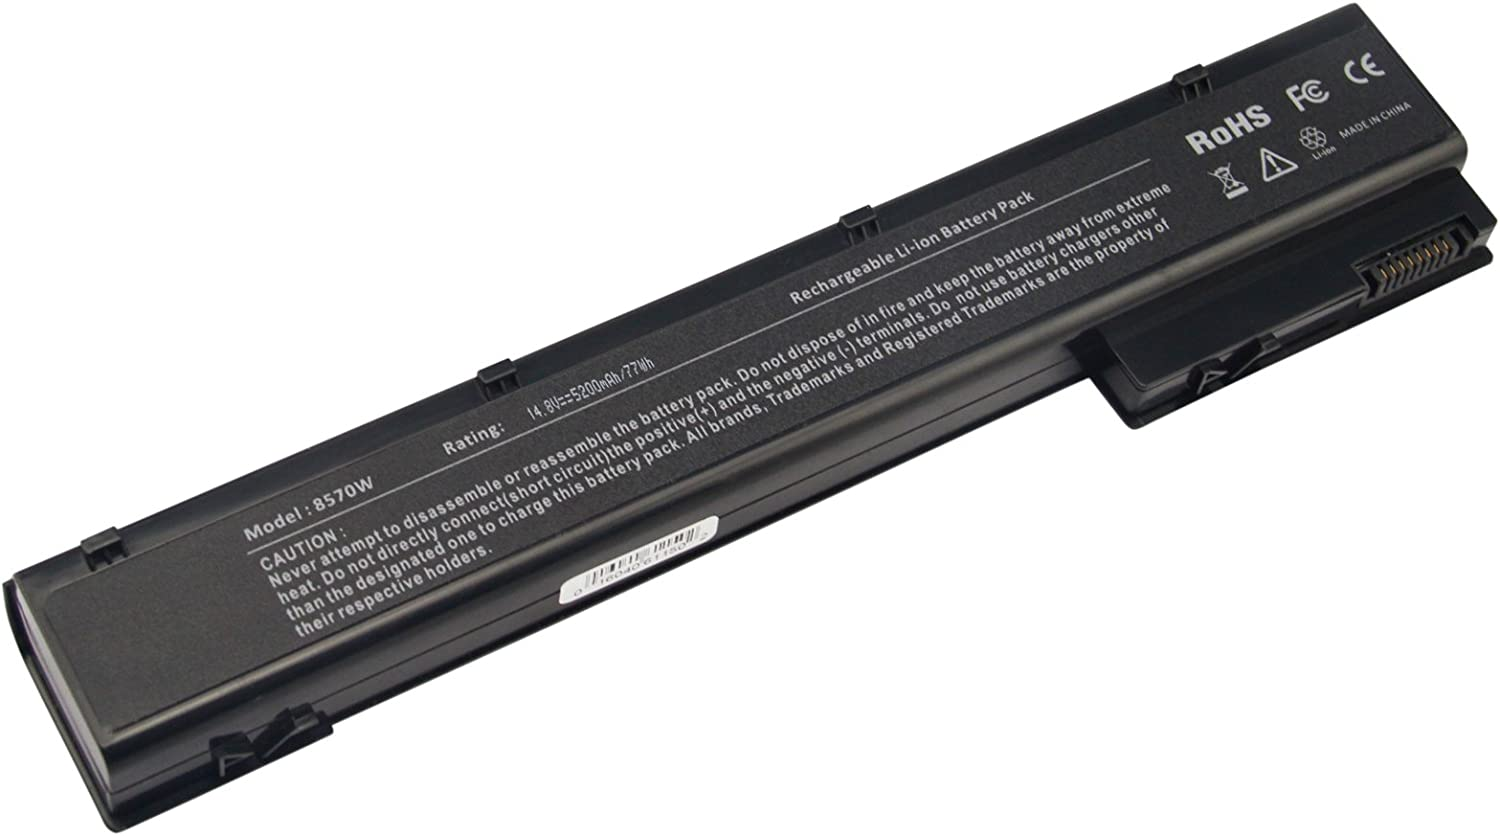 AC Doctor INC Laptop Battery for HP EliteBook 8560w 8570w 8760w 8770w Mobile Workstation, 5200mAh/14.8V/6-Cells